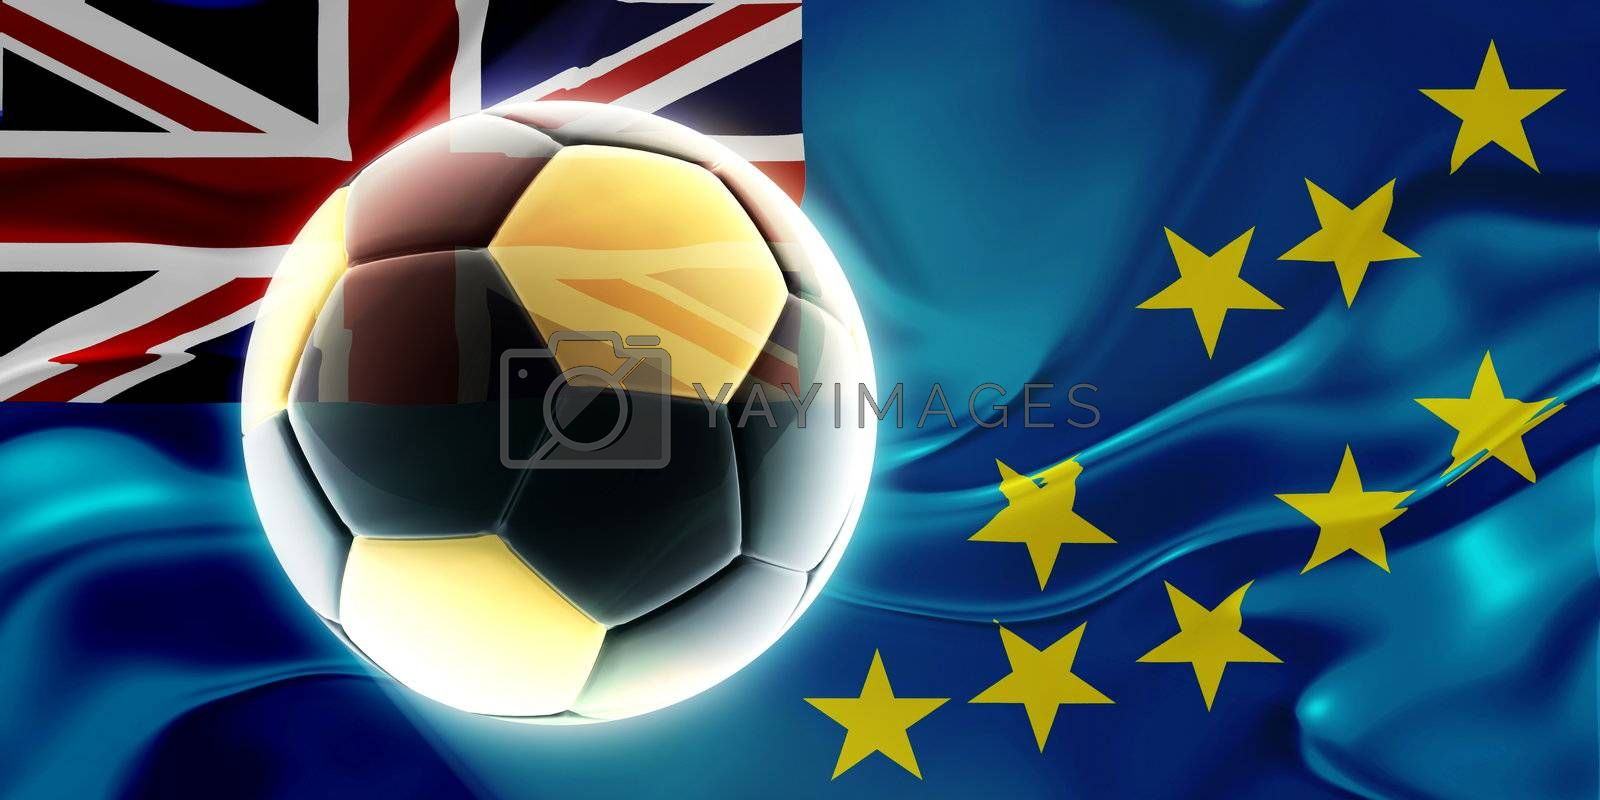 Flag of Tuvalu, national country symbol illustration wavy fabric sports soccer football